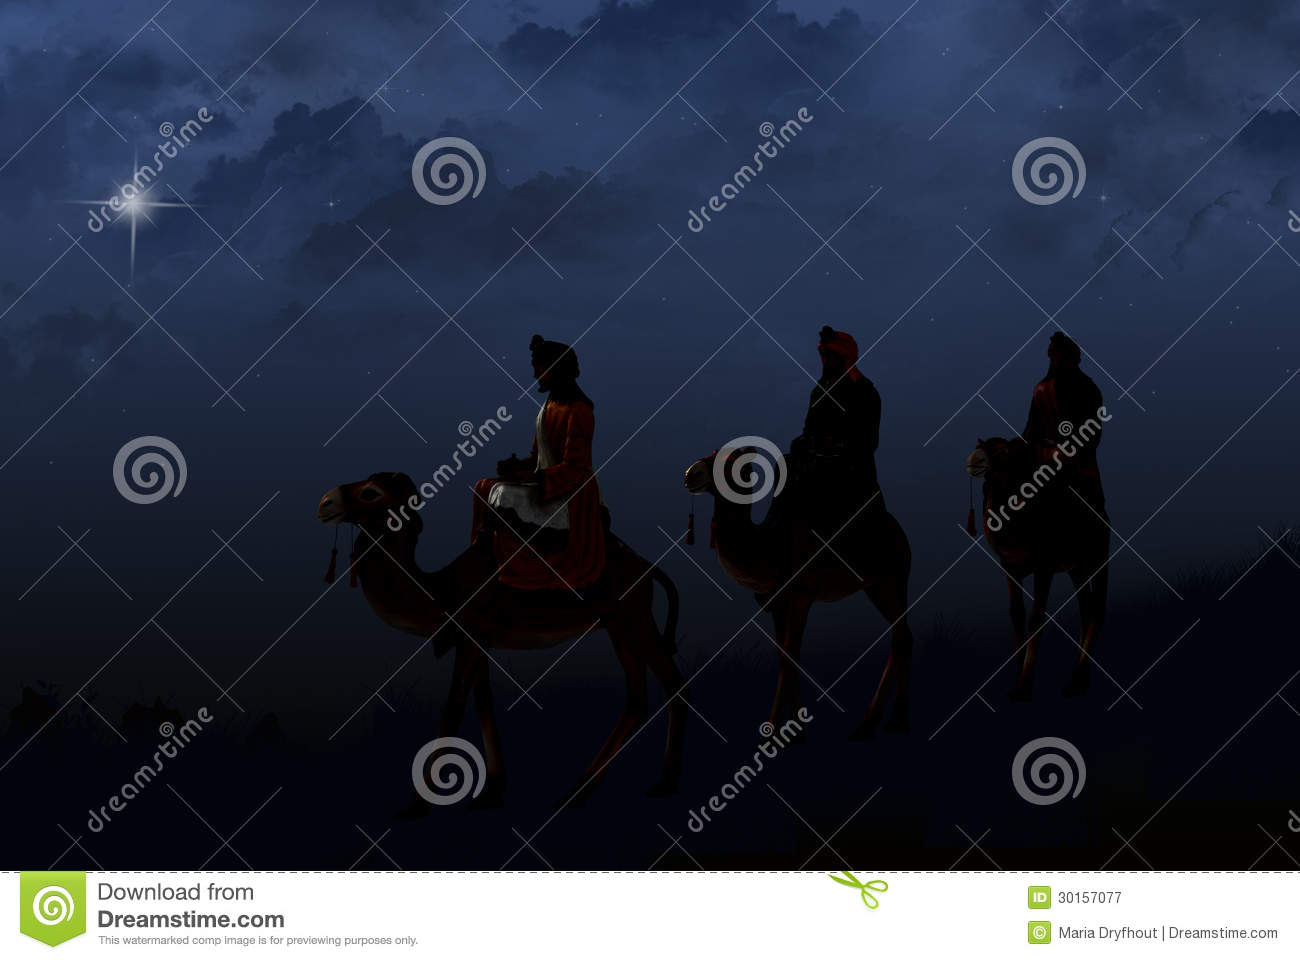 Silhouette of three wise men on camels following a bright star.